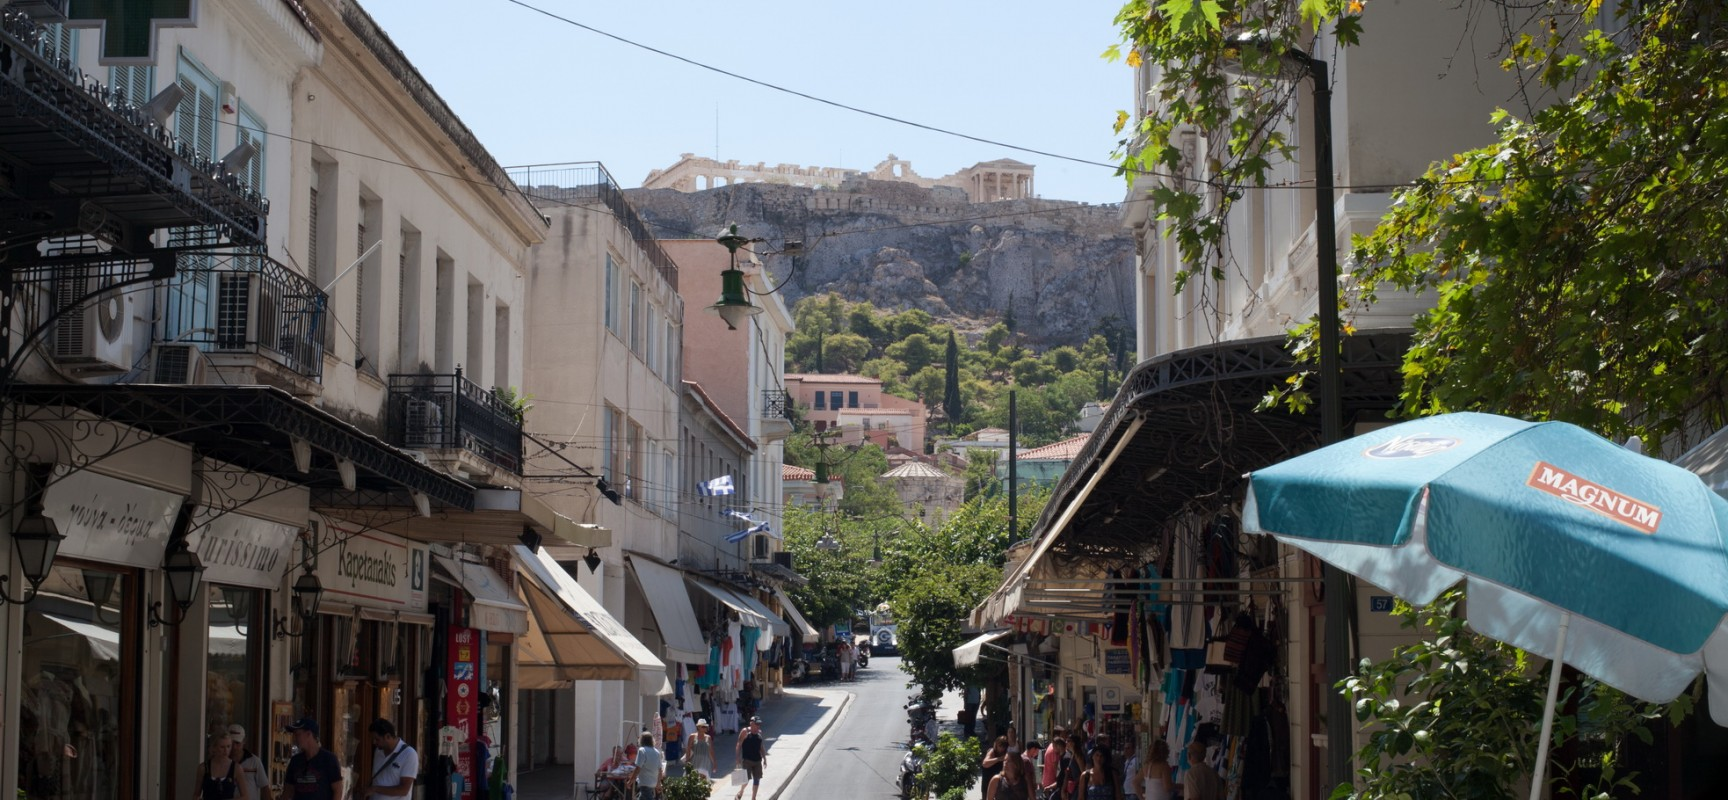 photos of the Plaka,shops and restaurants,Church of Panaghia,graffiti,Acropolis,Athens,Greece